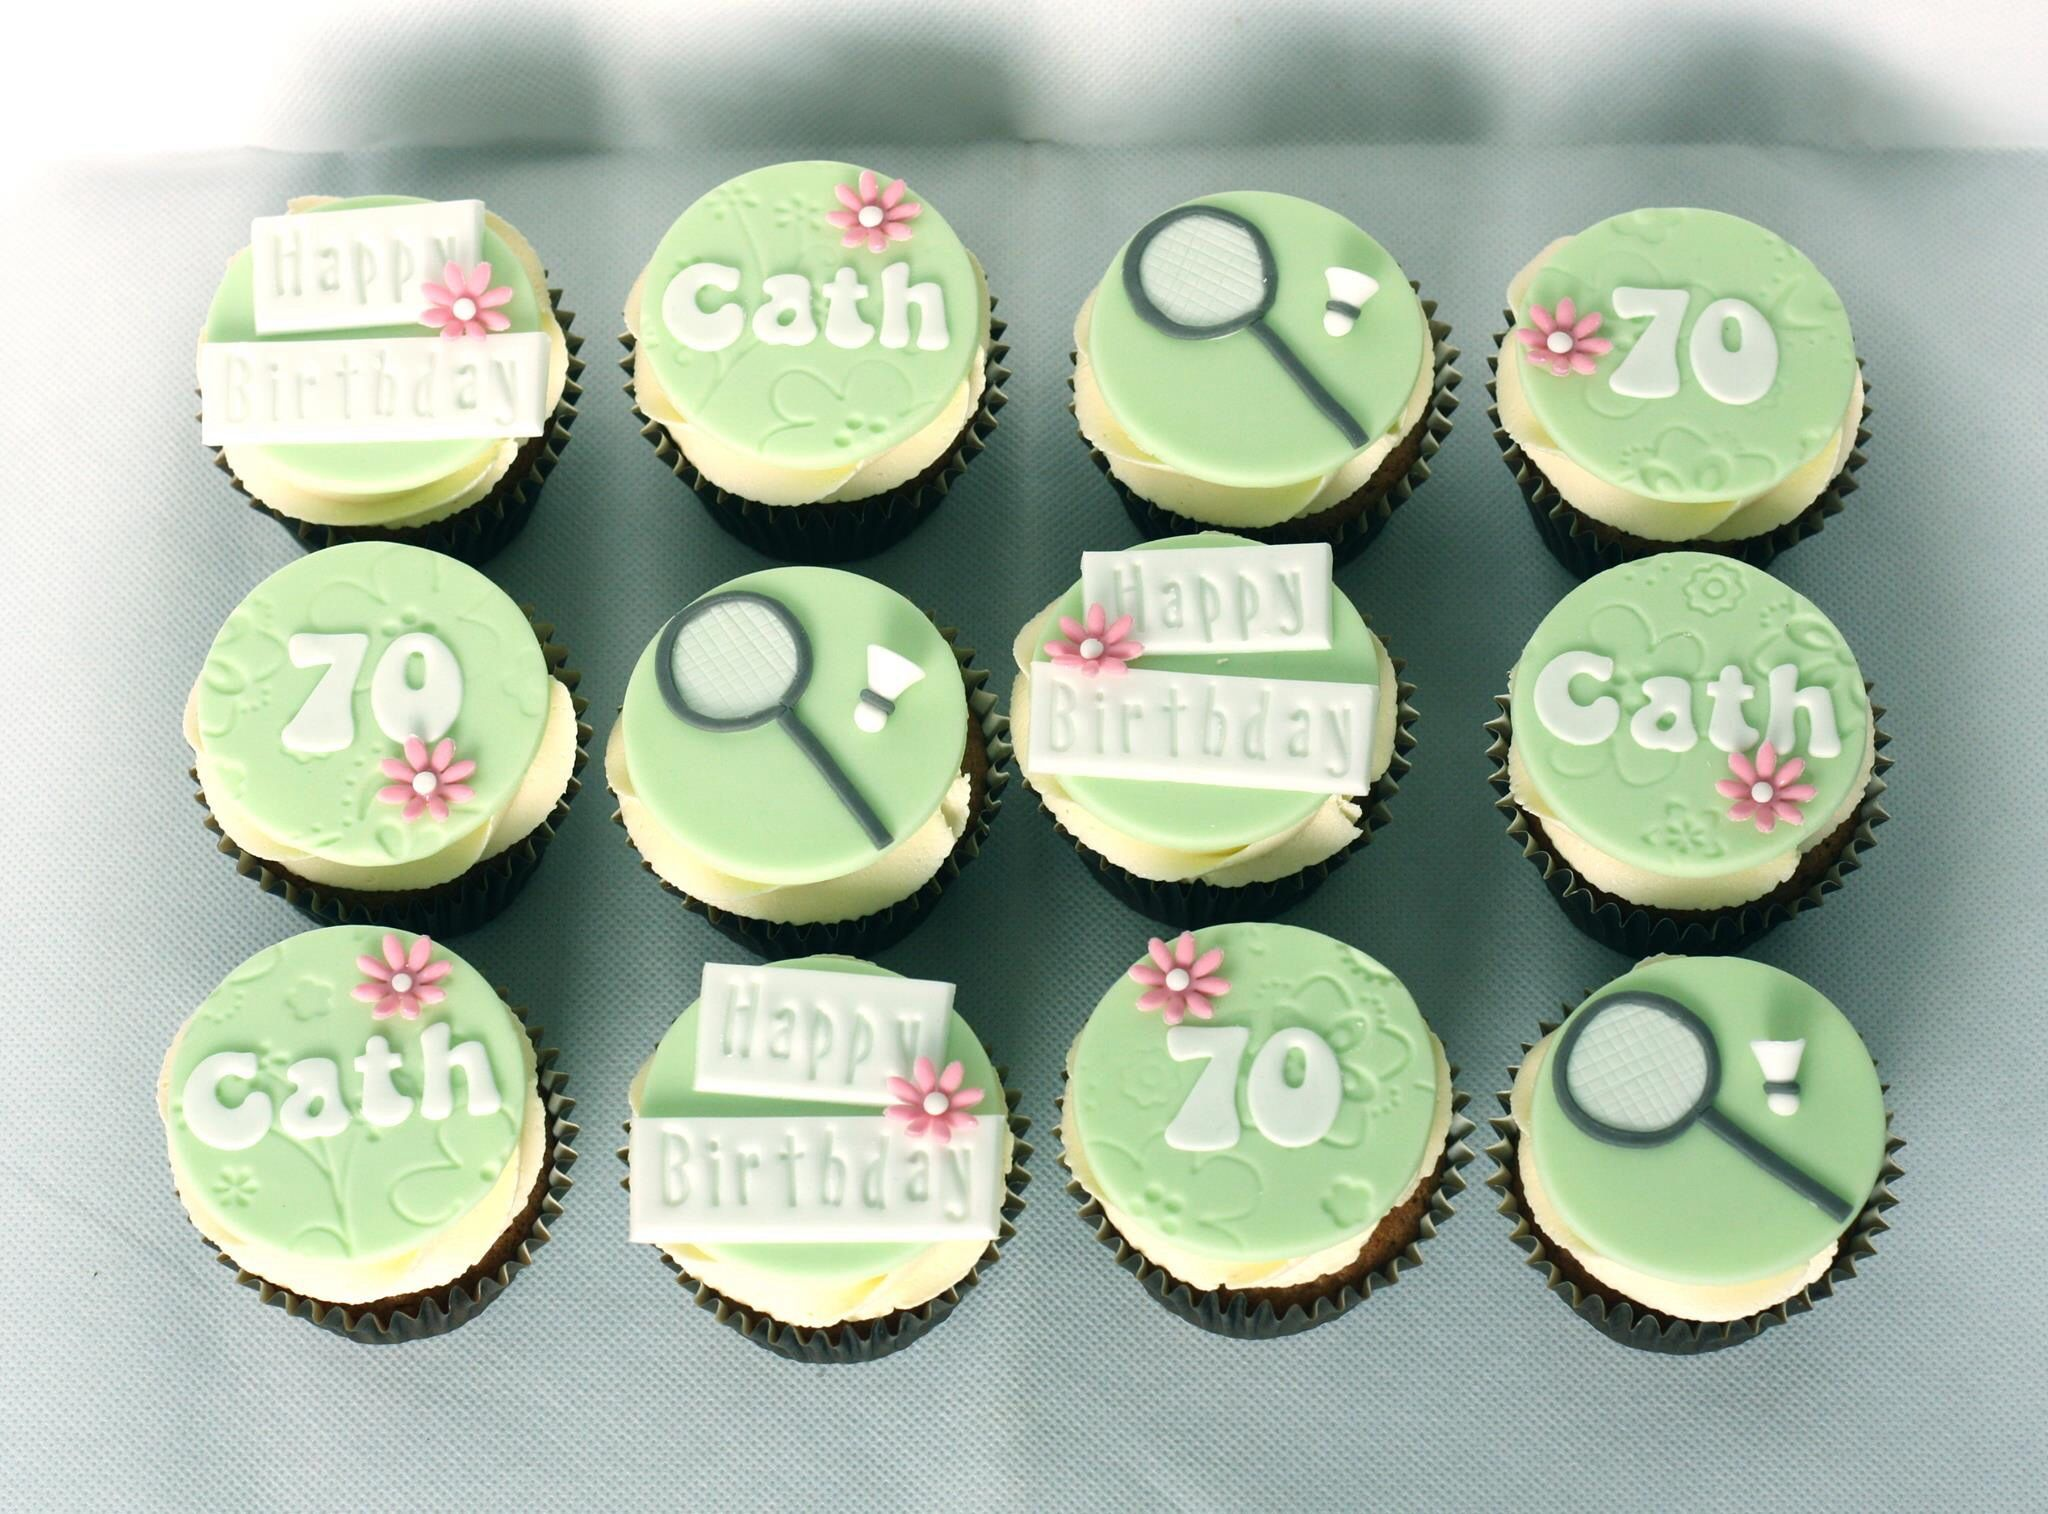 Th Birthday Cupcakes For A Lady Who Loves Badminton Www - Birthday cakes 70th ladies